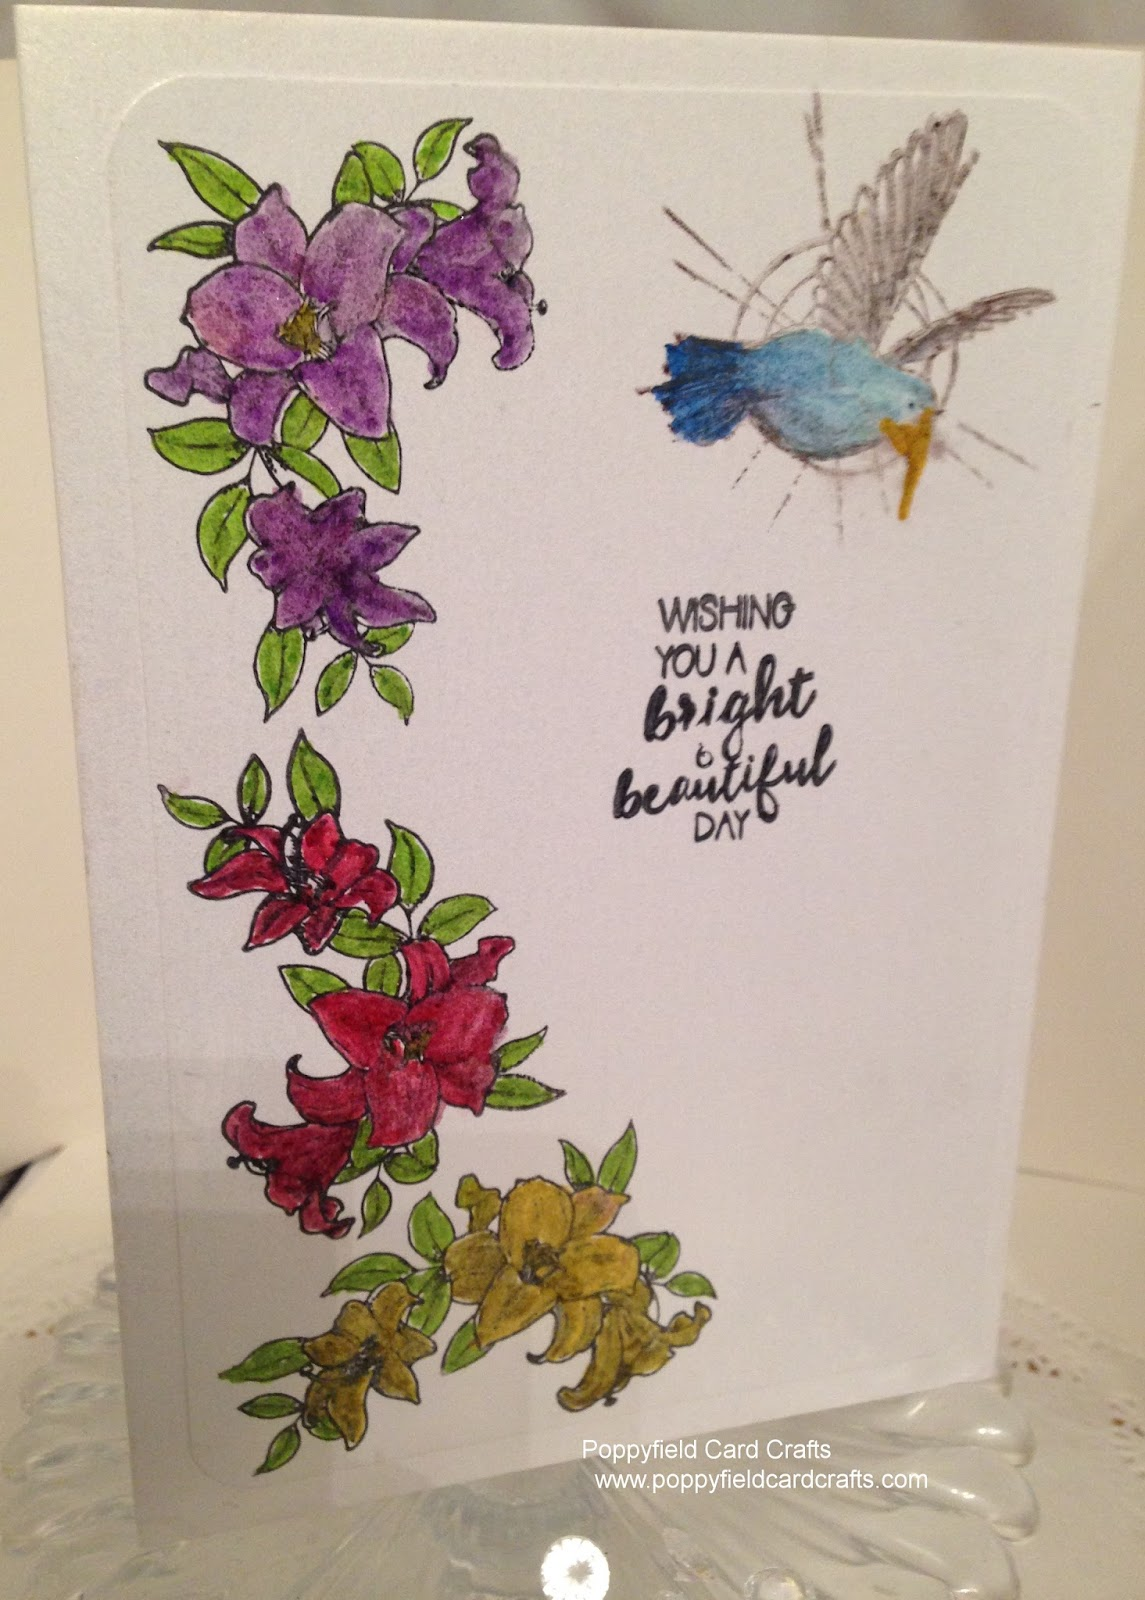 Poppyfield Card Crafts Wishing You A Bright Beautiful Day